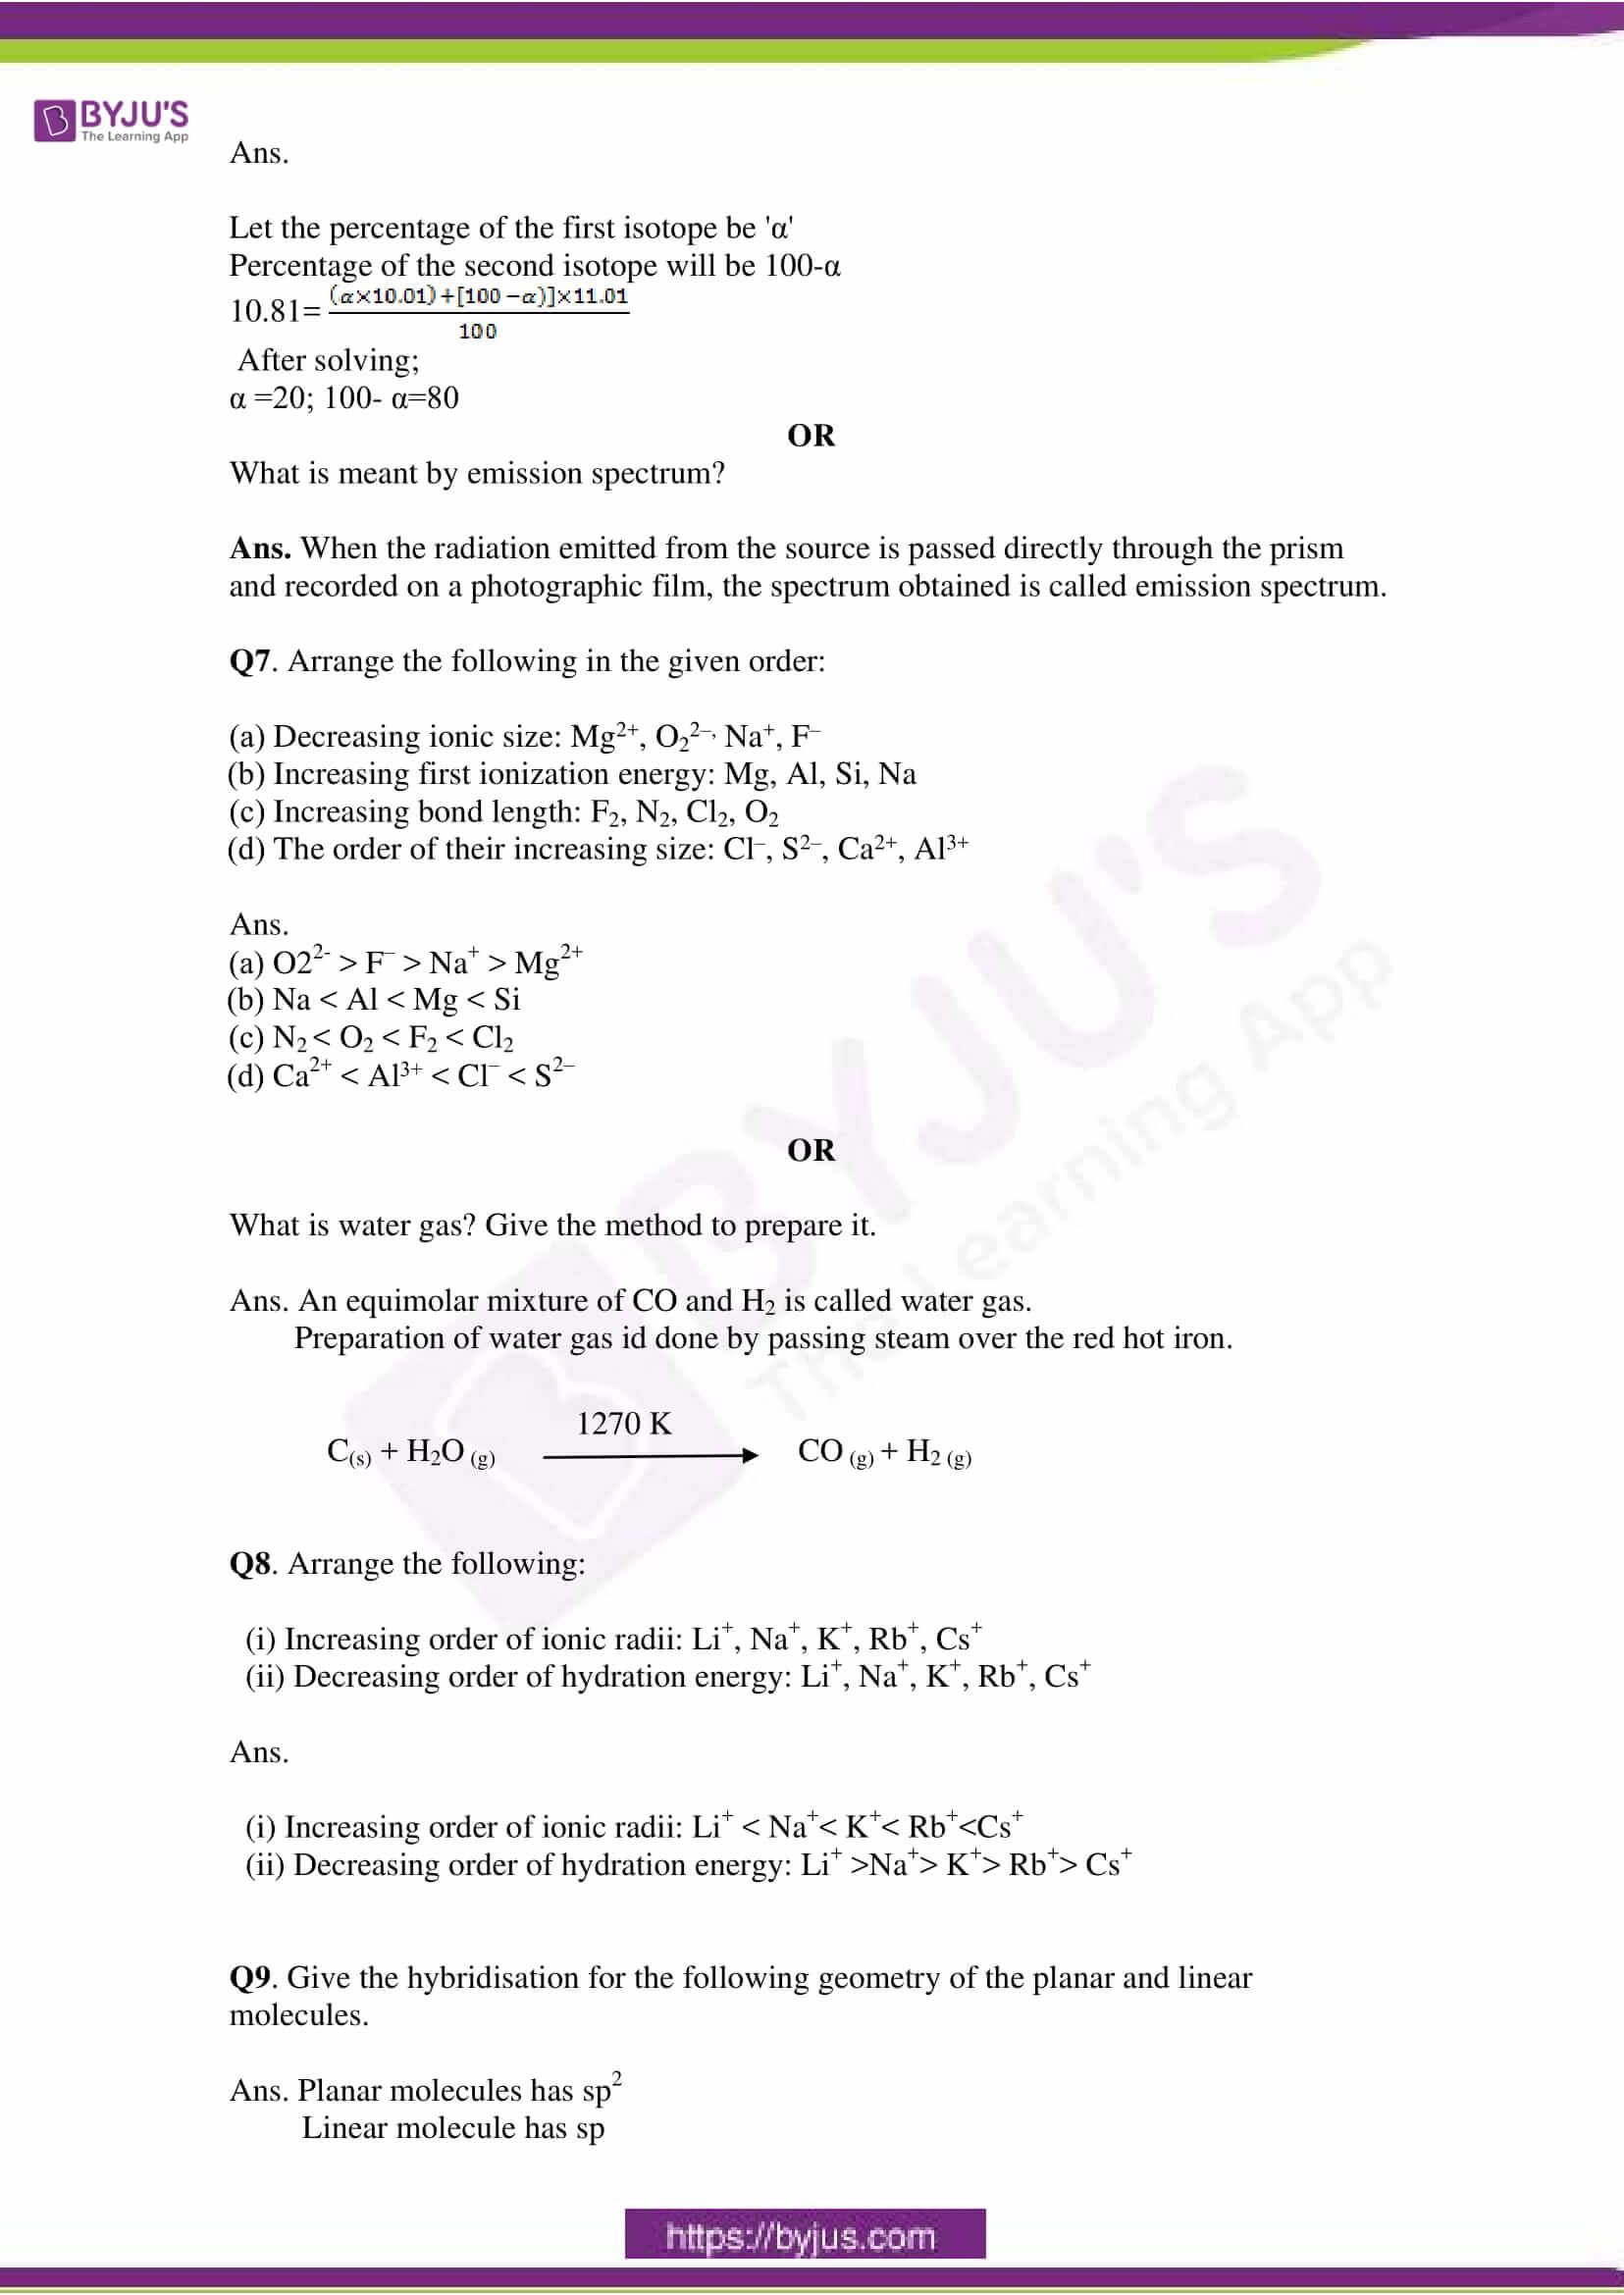 cbse class 11 che sample paper set 2 solution